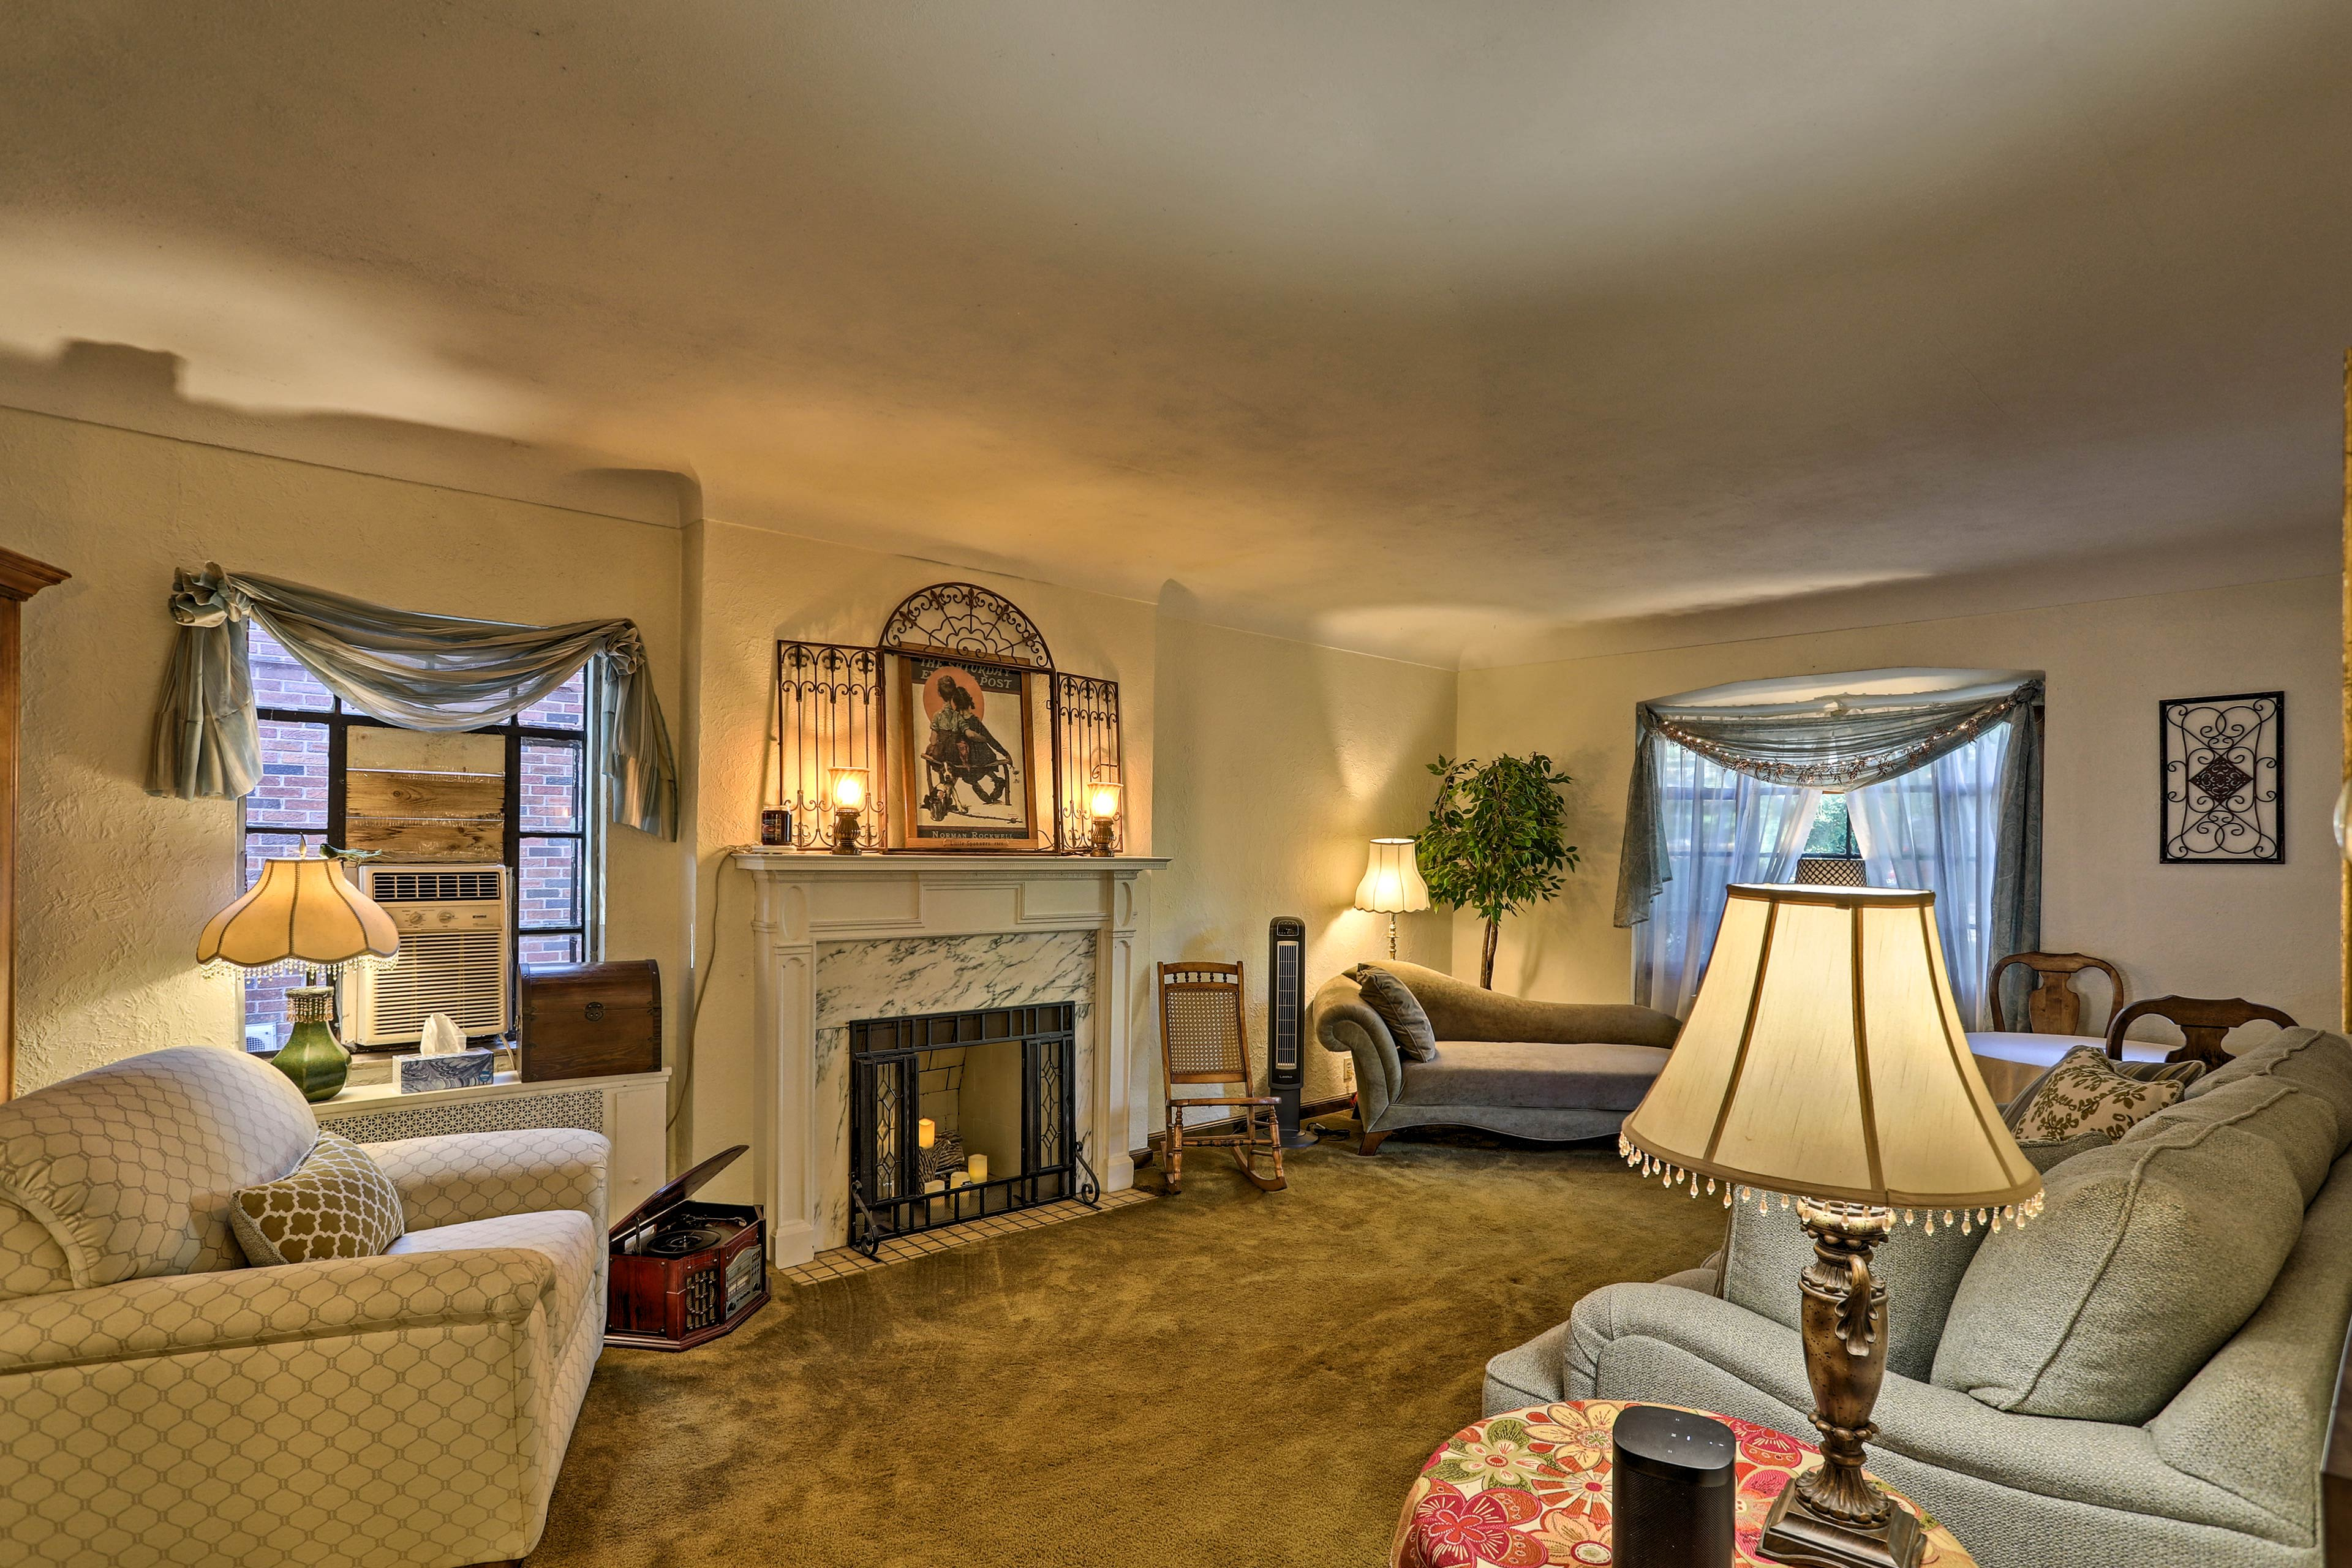 A faux fireplace with electric candles anchors the living room.